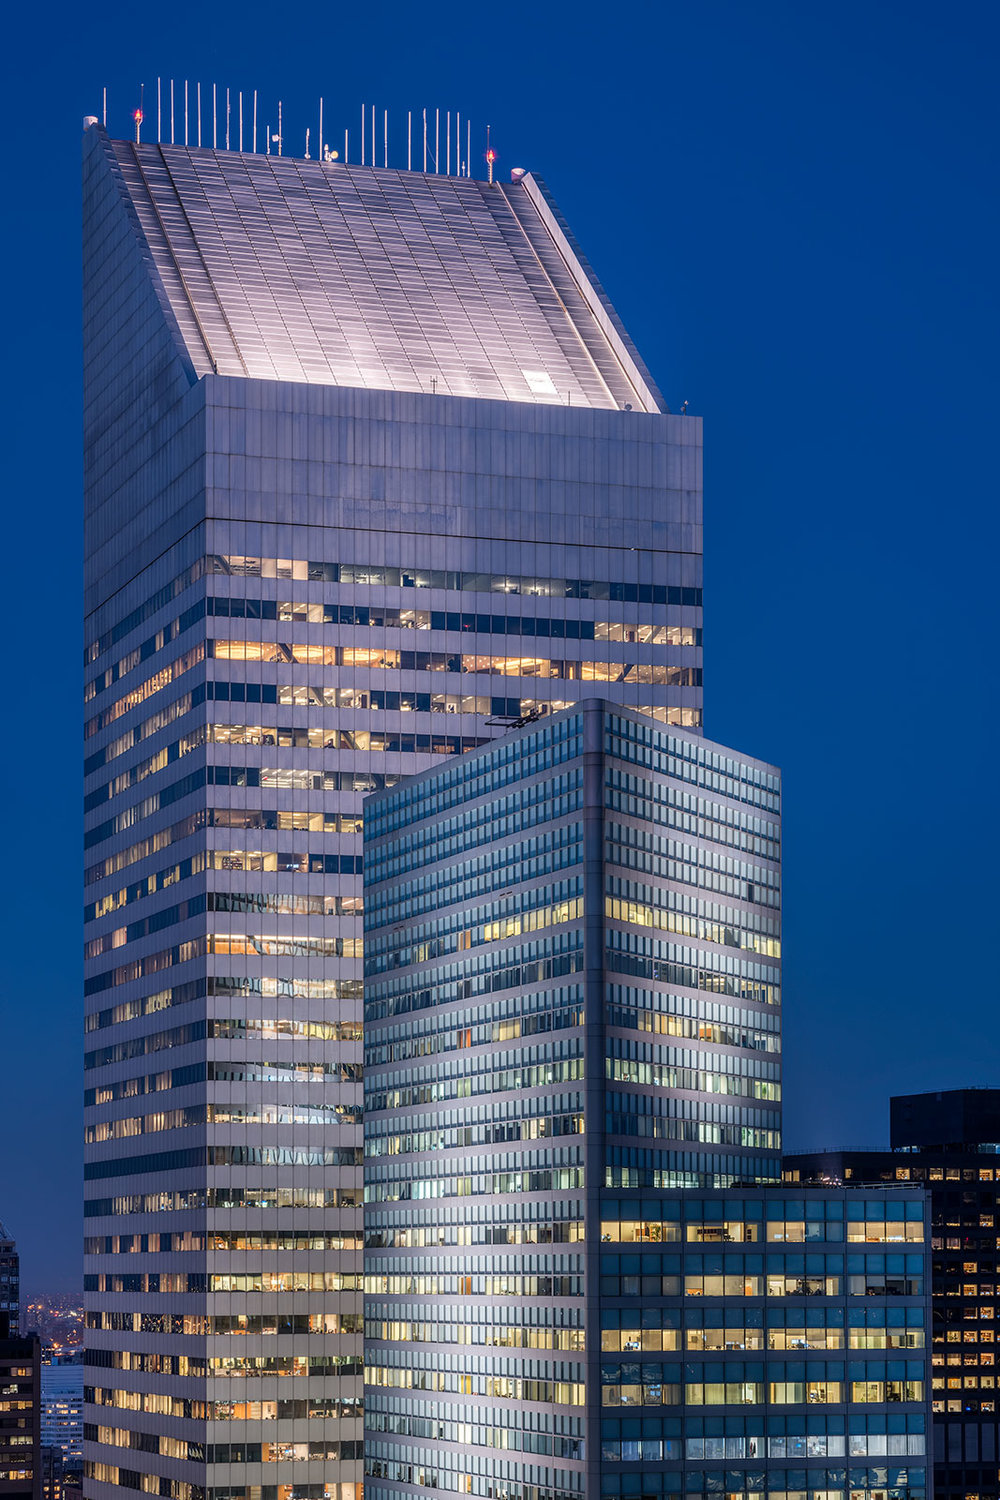 Citigroup Center, 601 Lexington Avenue, New York